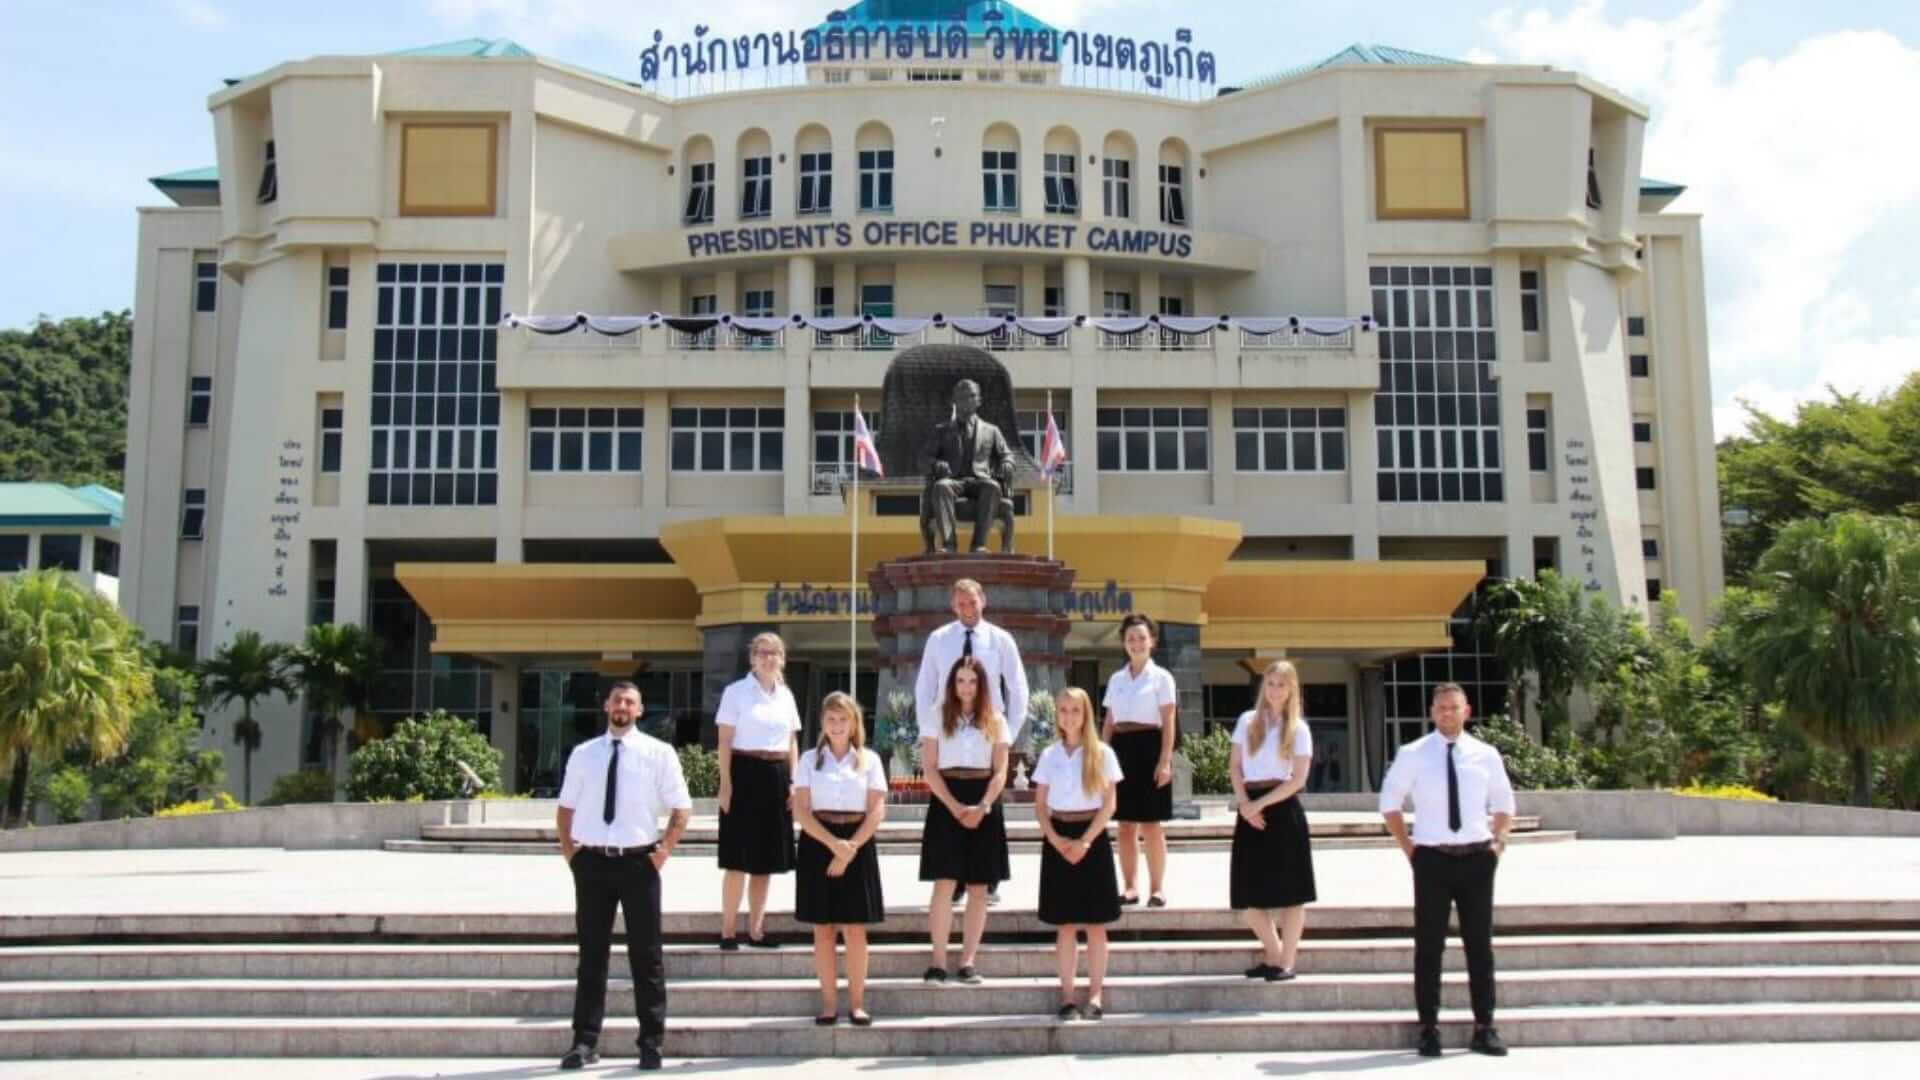 A group of people wearing business clothes are standing on the stairs in front of a university in Phuket.